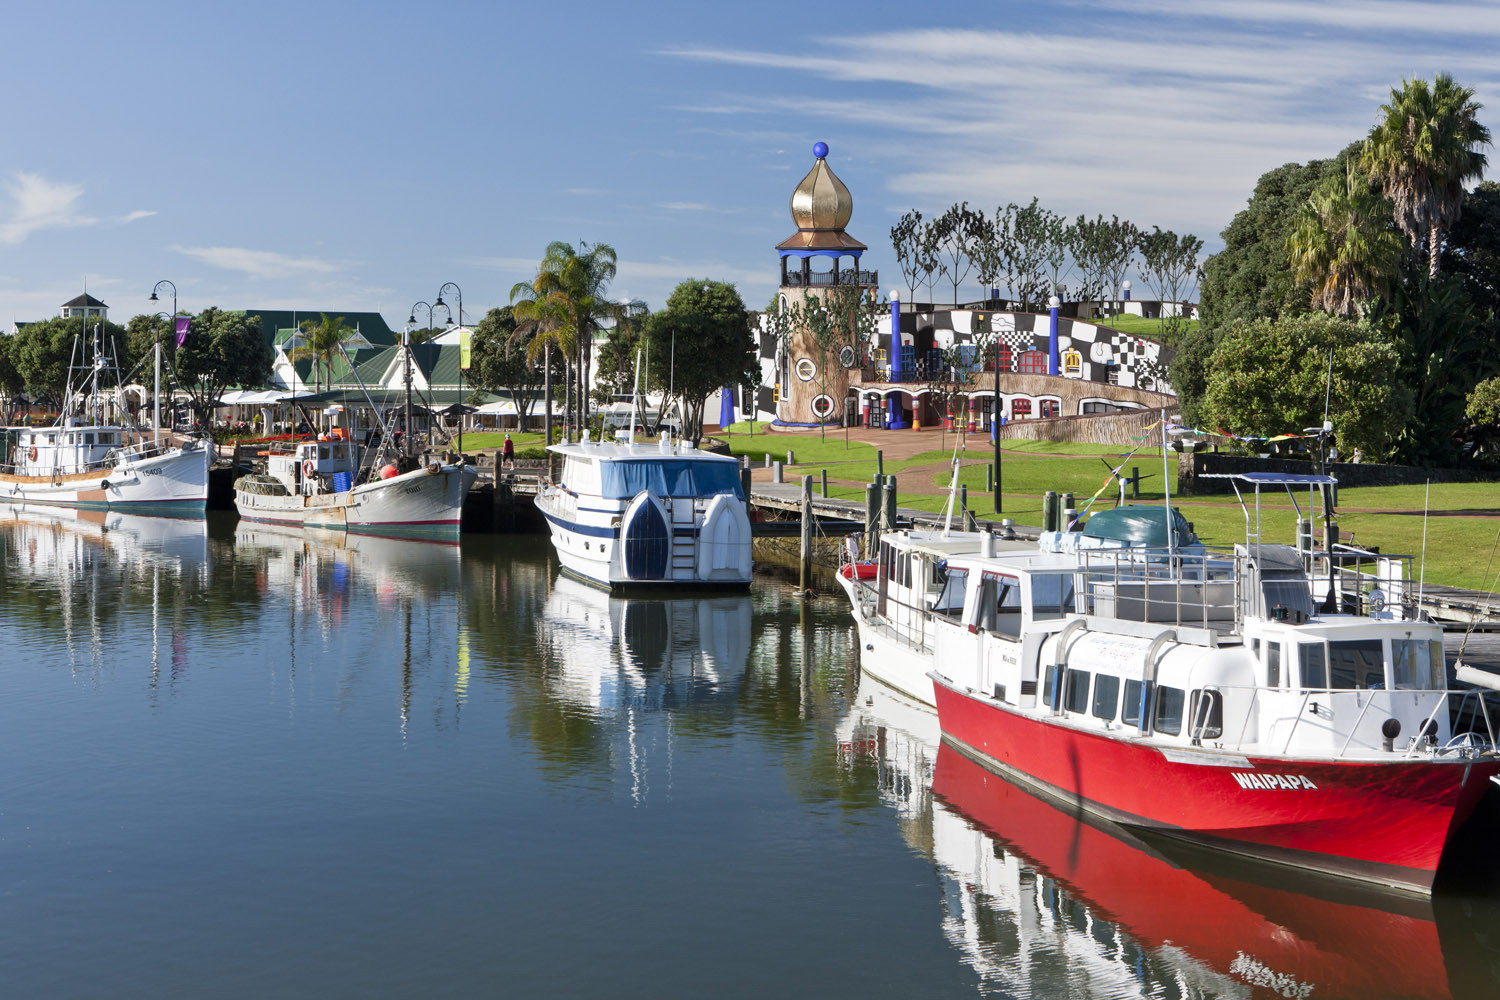 Hundertwasser's Last Unbuilt Work Could Become a Reality in New Zealand, A representation of the Hundertwasser Art Center in Whangarei's Town Basin. Image © Wikimedia CC User Steve Sharp